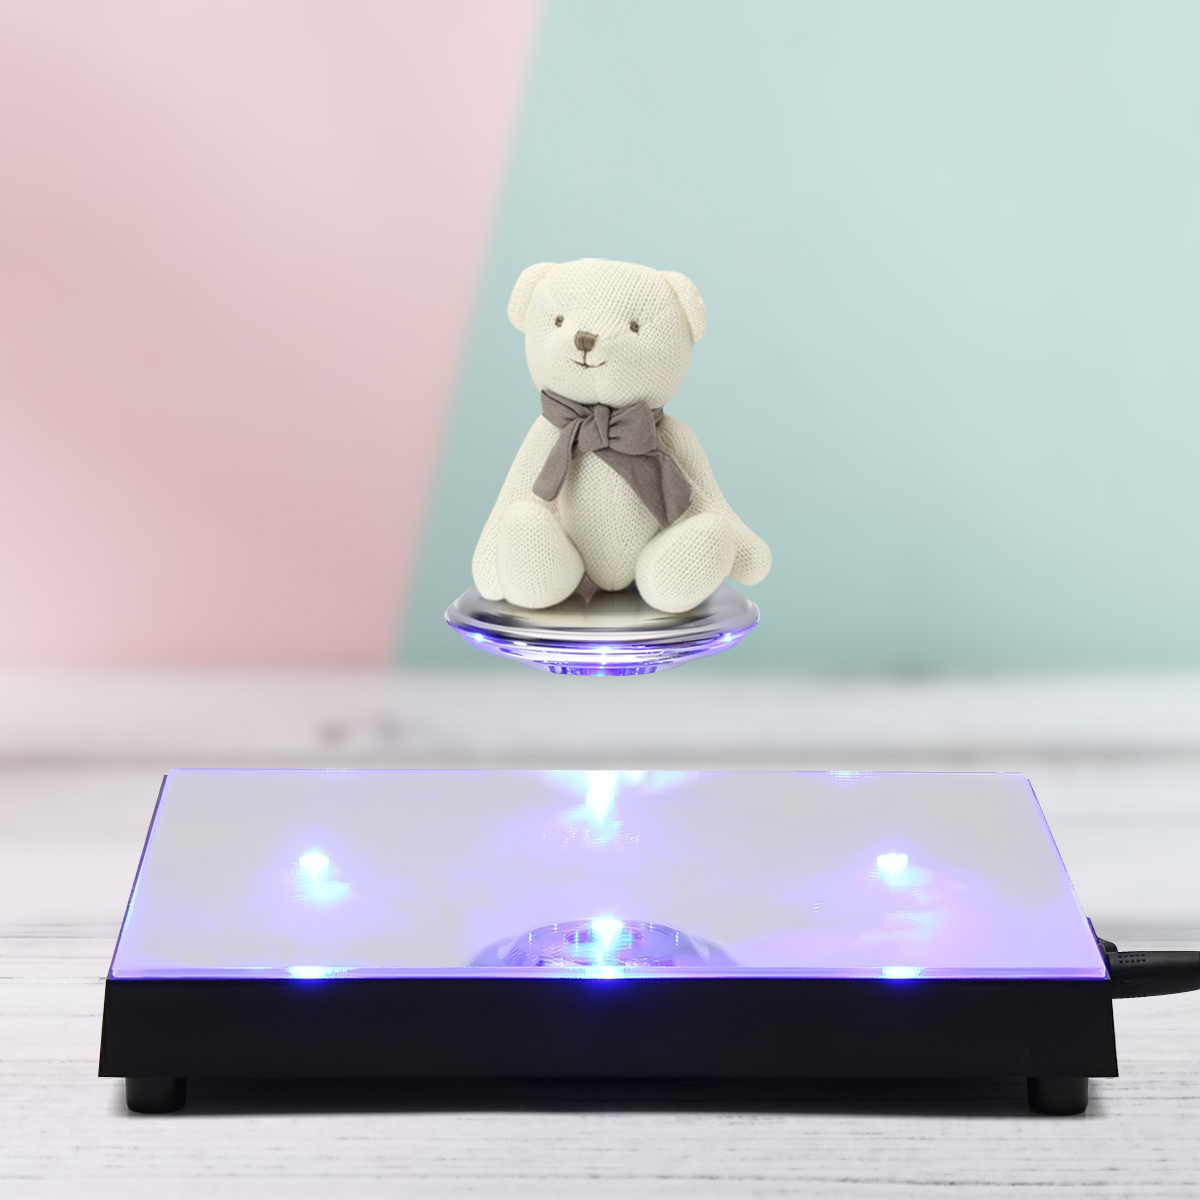 Magnetic Levitation LED Display Platform 350g Floating Rotating Jewelry Show Stand Holder Gift